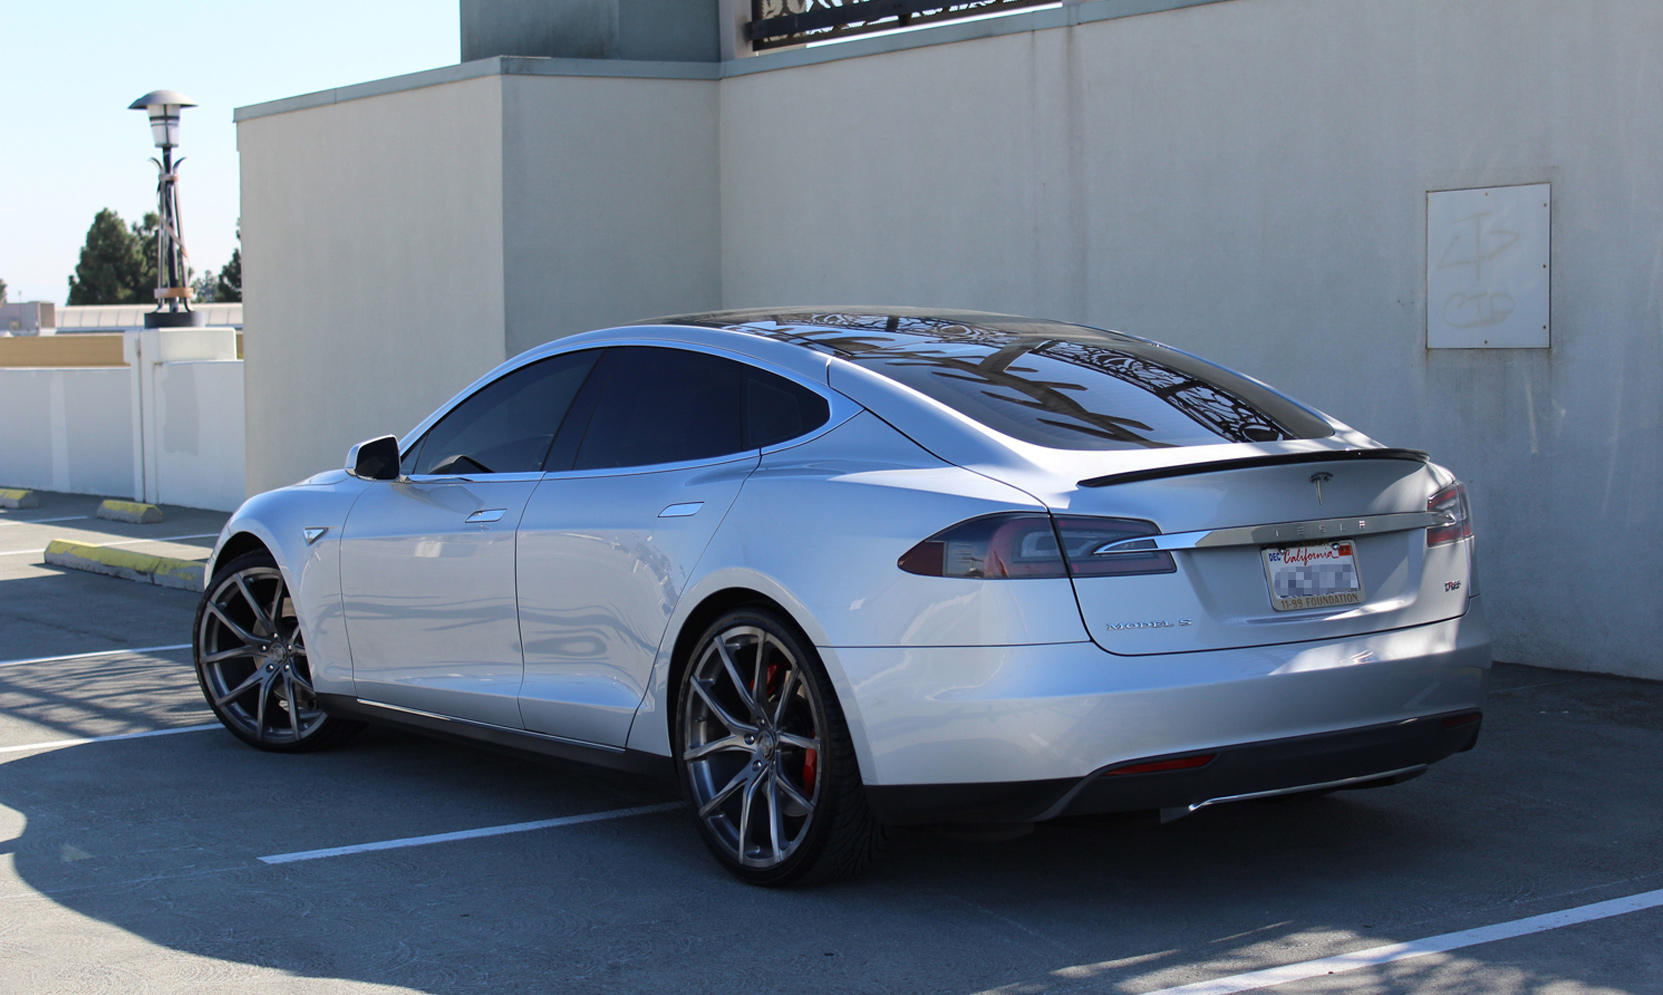 M-102 on the Tesla Model S.